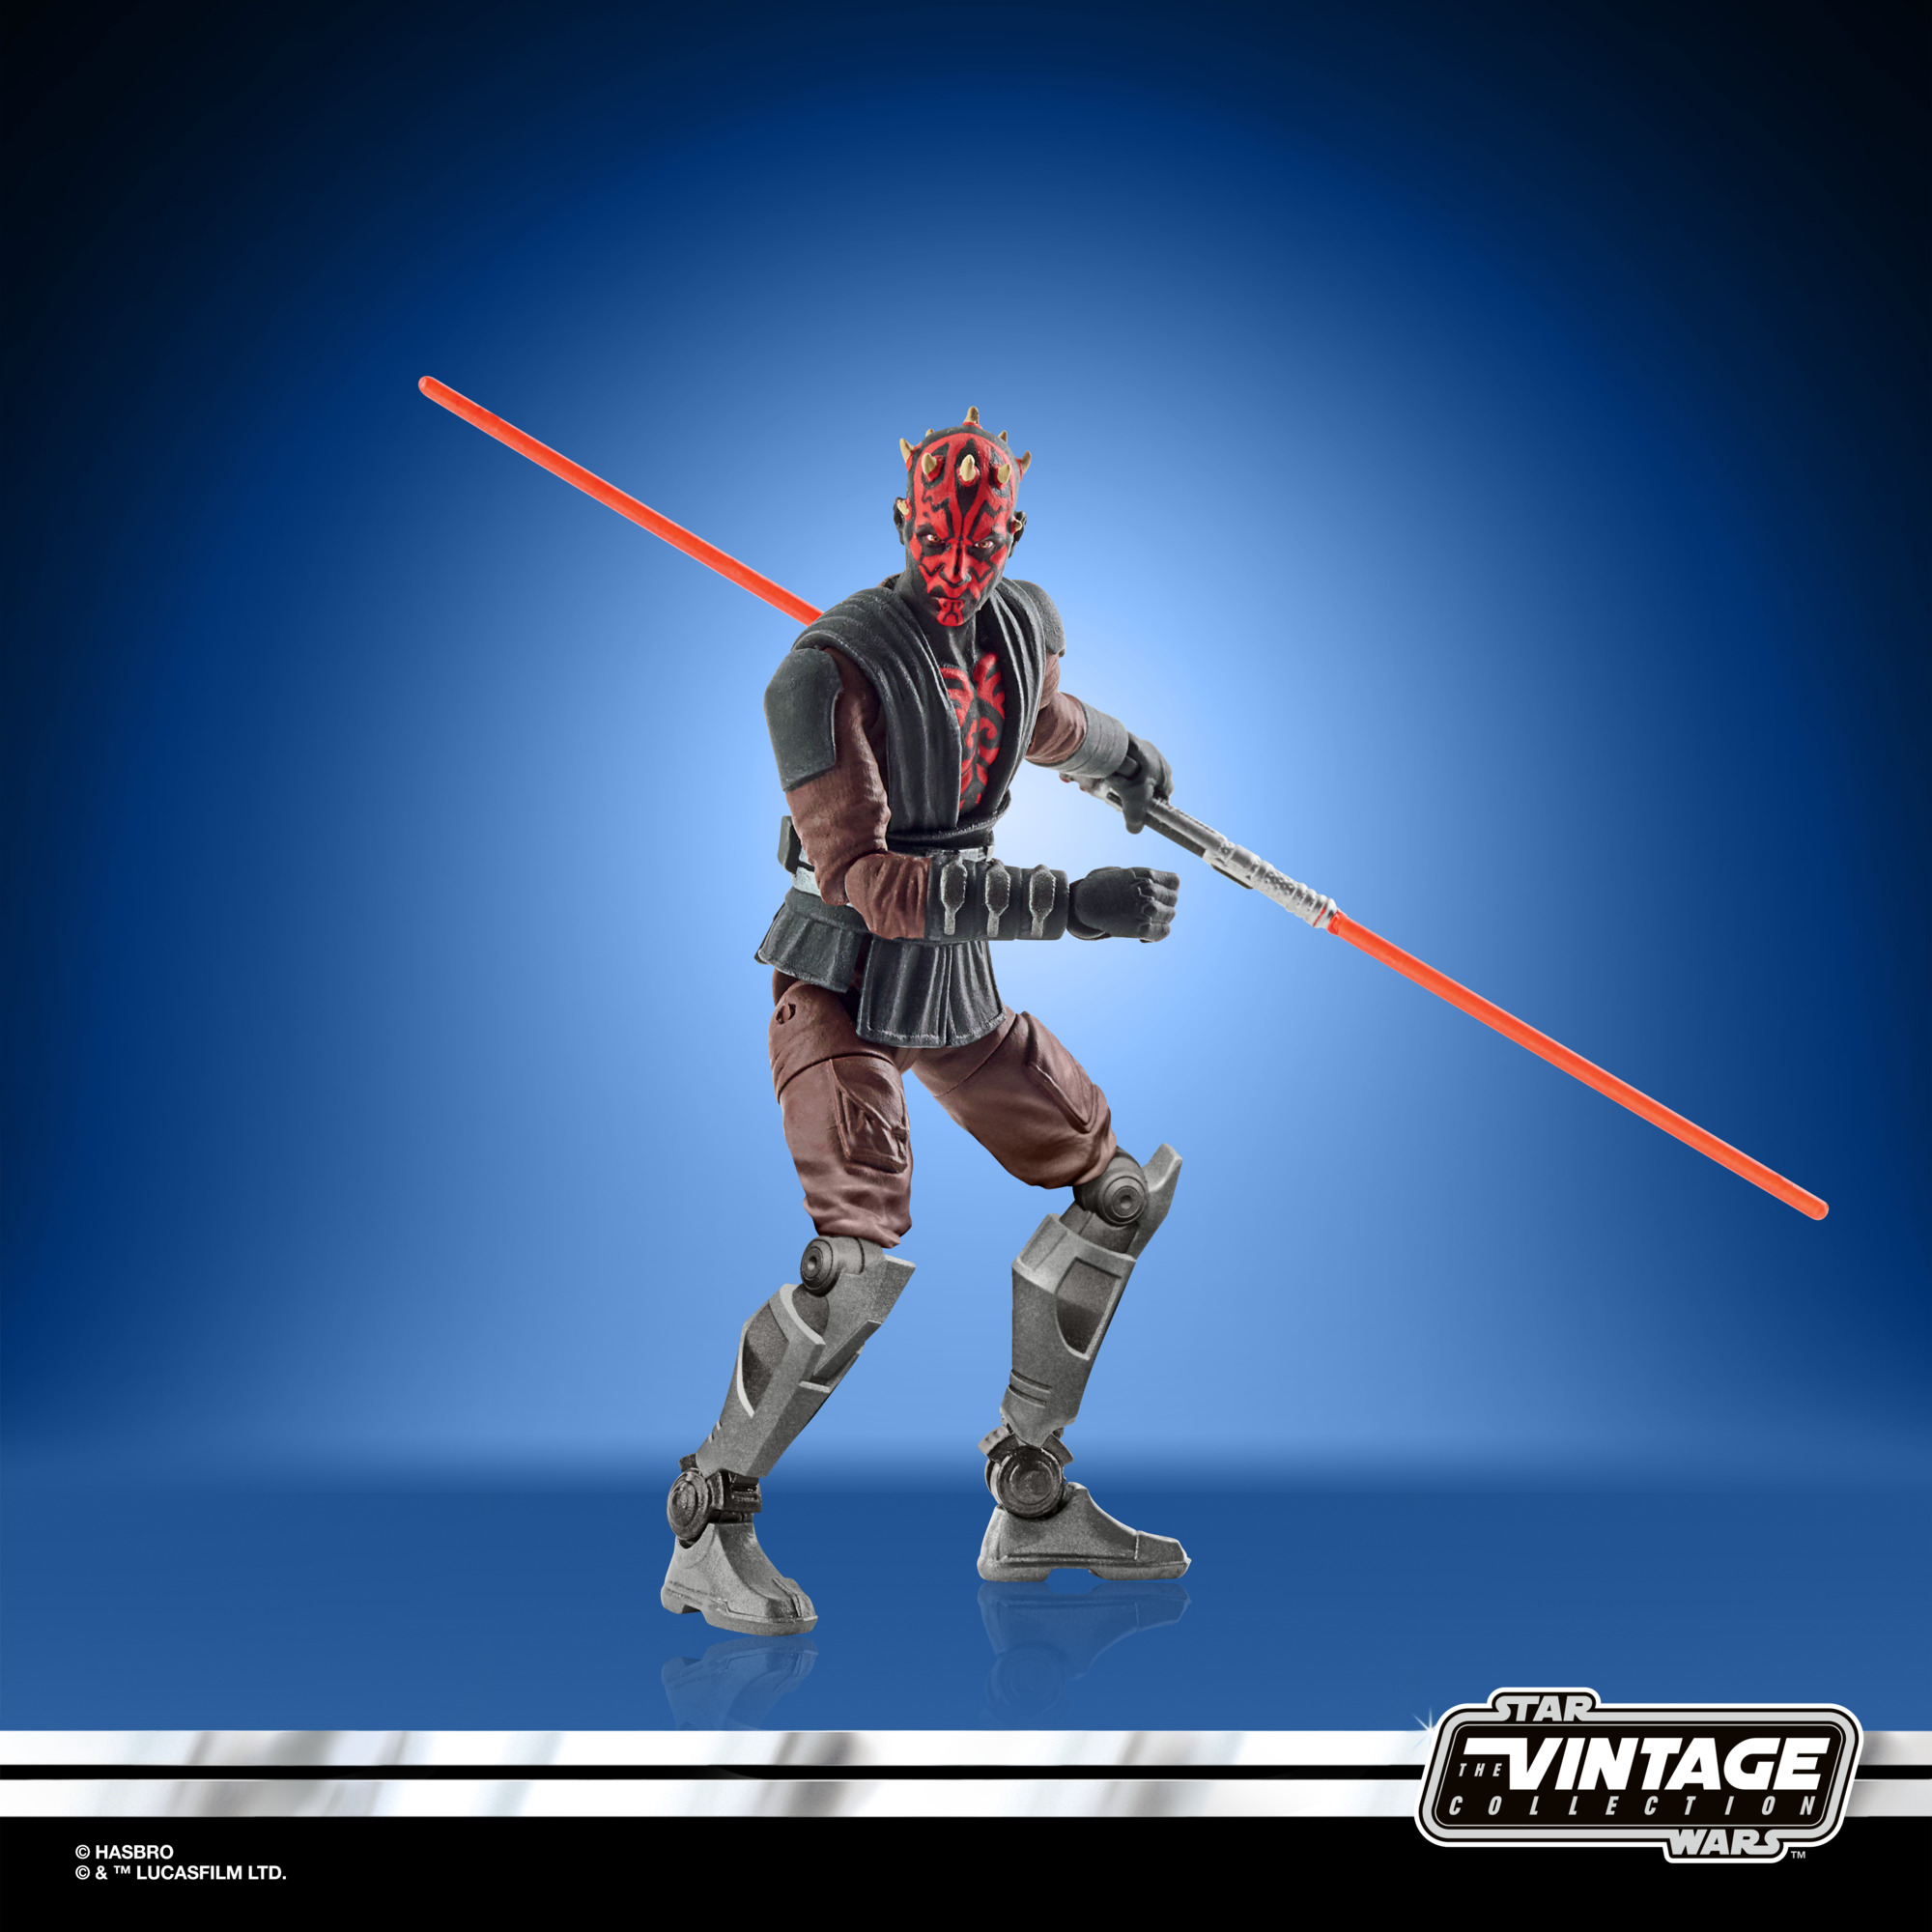 STAR WARS THE VINTAGE COLLECTION 3.75-INCH DARTH MAUL (MANDALORE) Figure – oop(3)